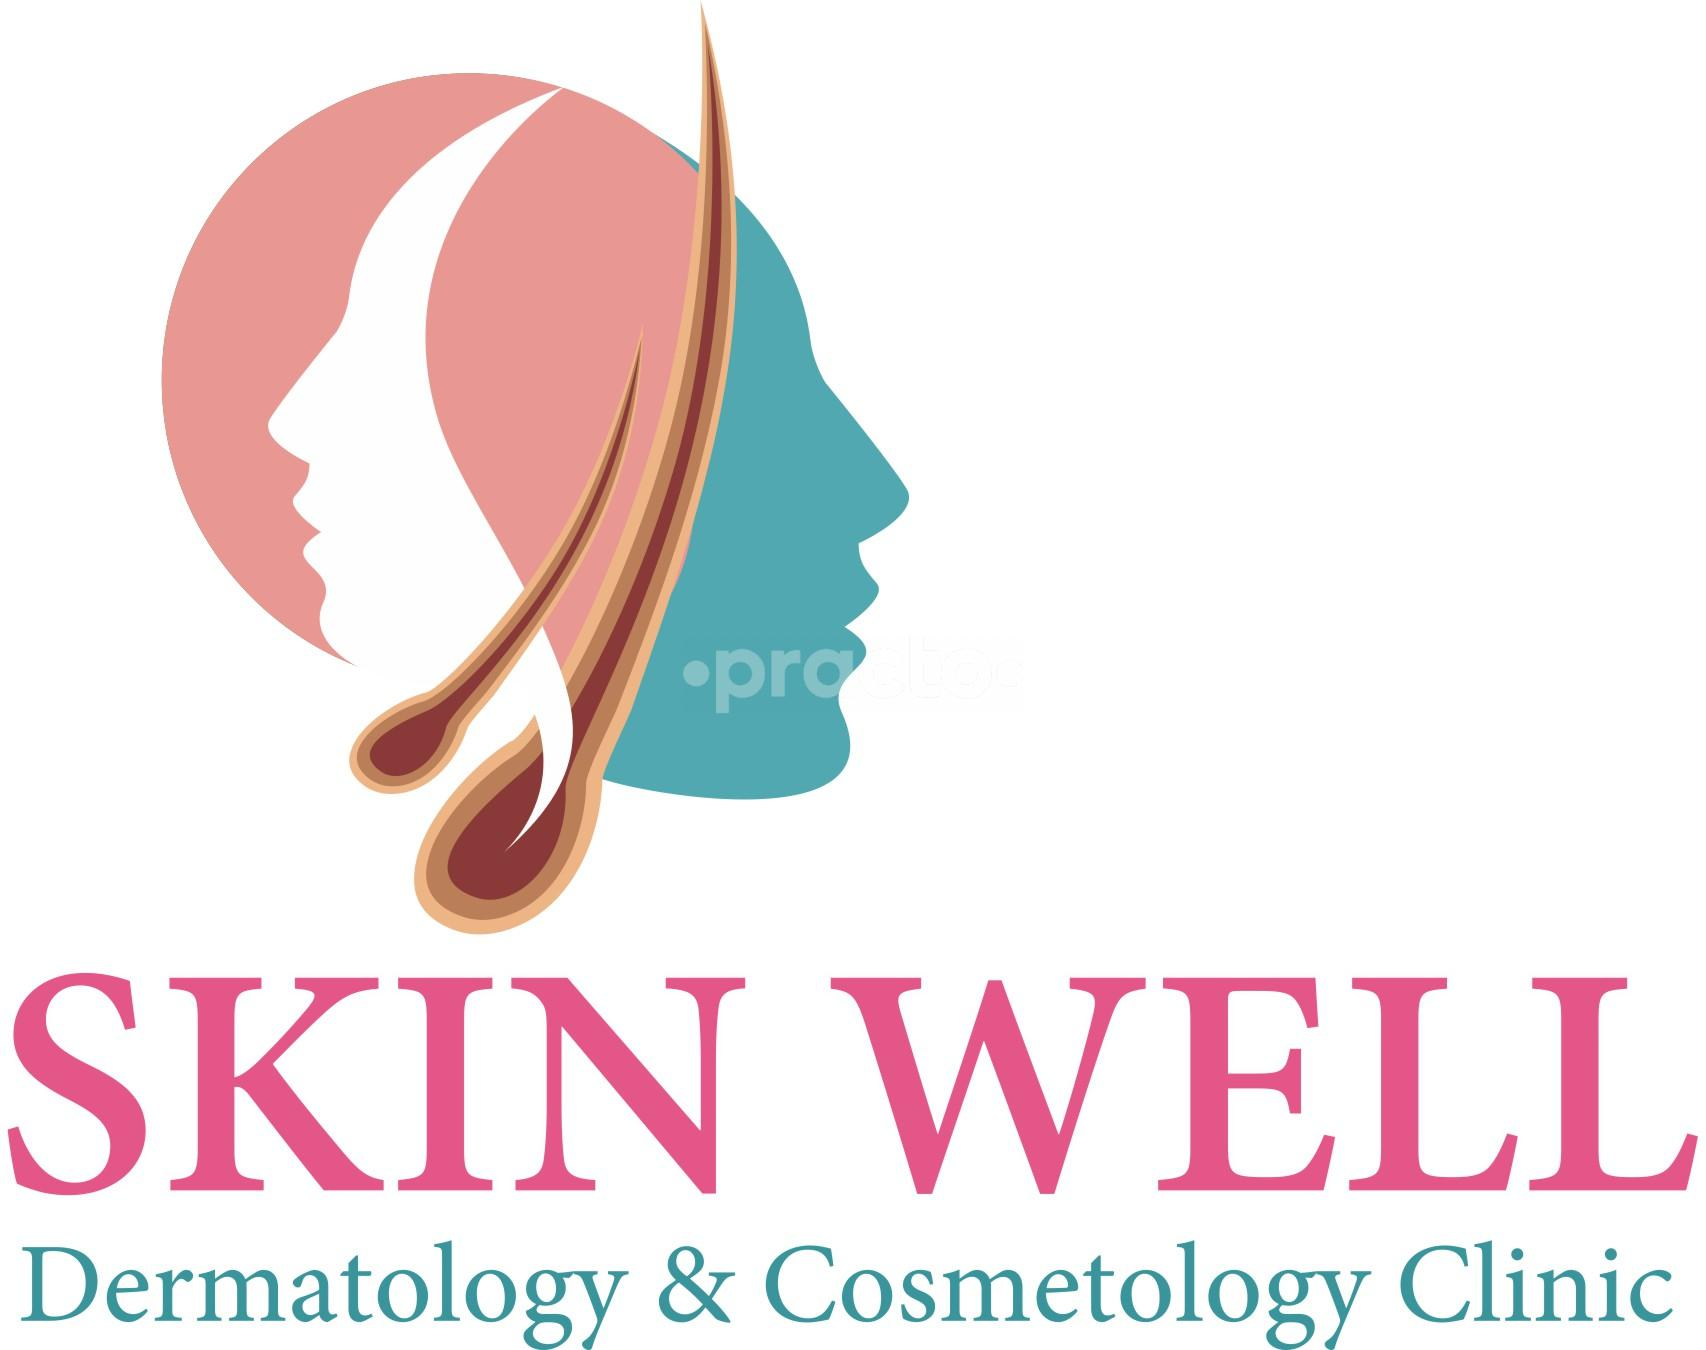 Skin Well Dermatology and Cosmetology Clinic